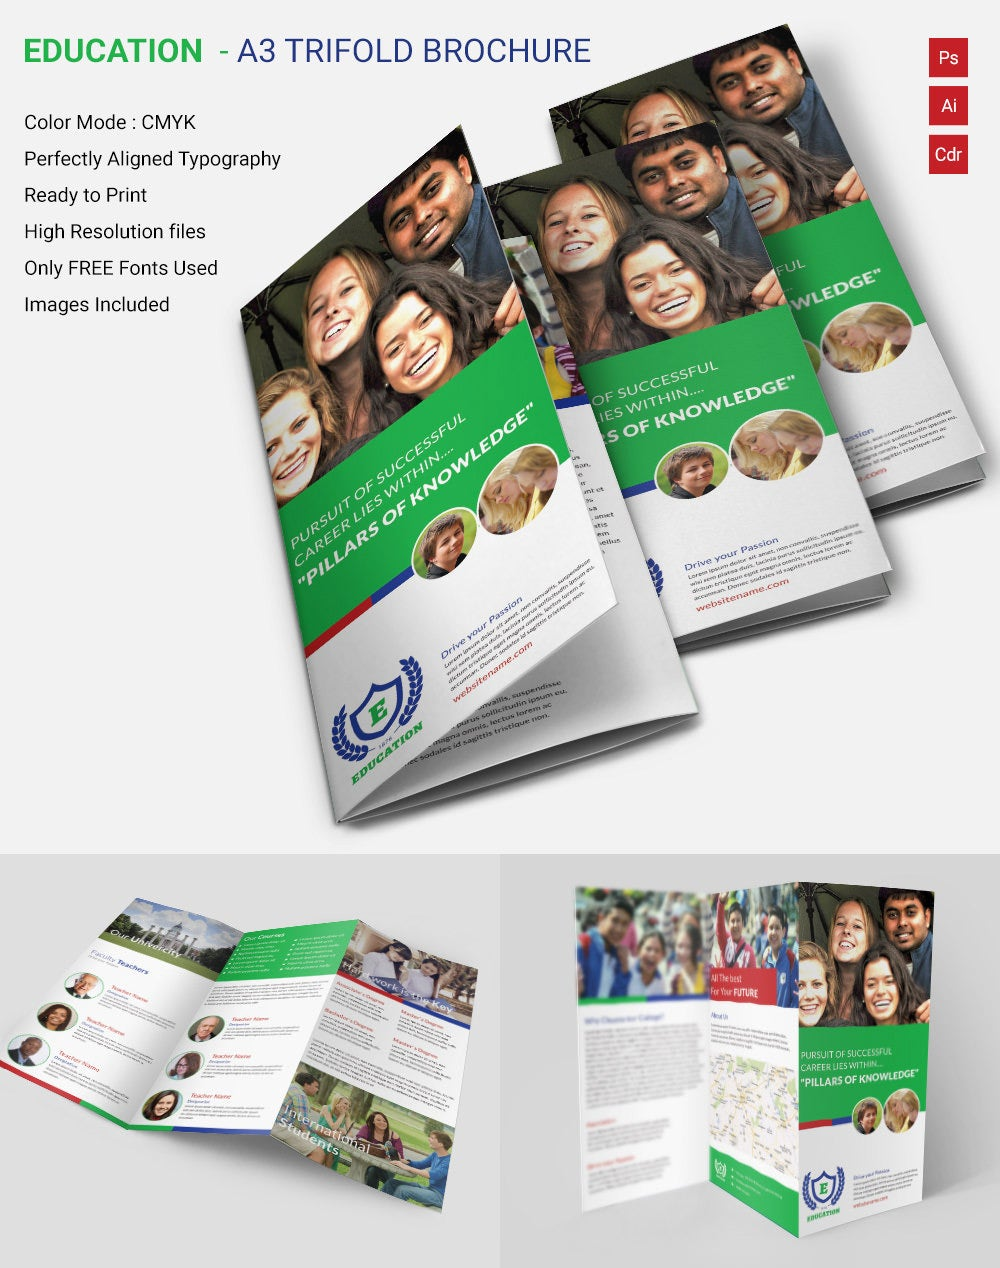 tri fold brochure word pdf psd eps attractive education a3 tri fold brochure template